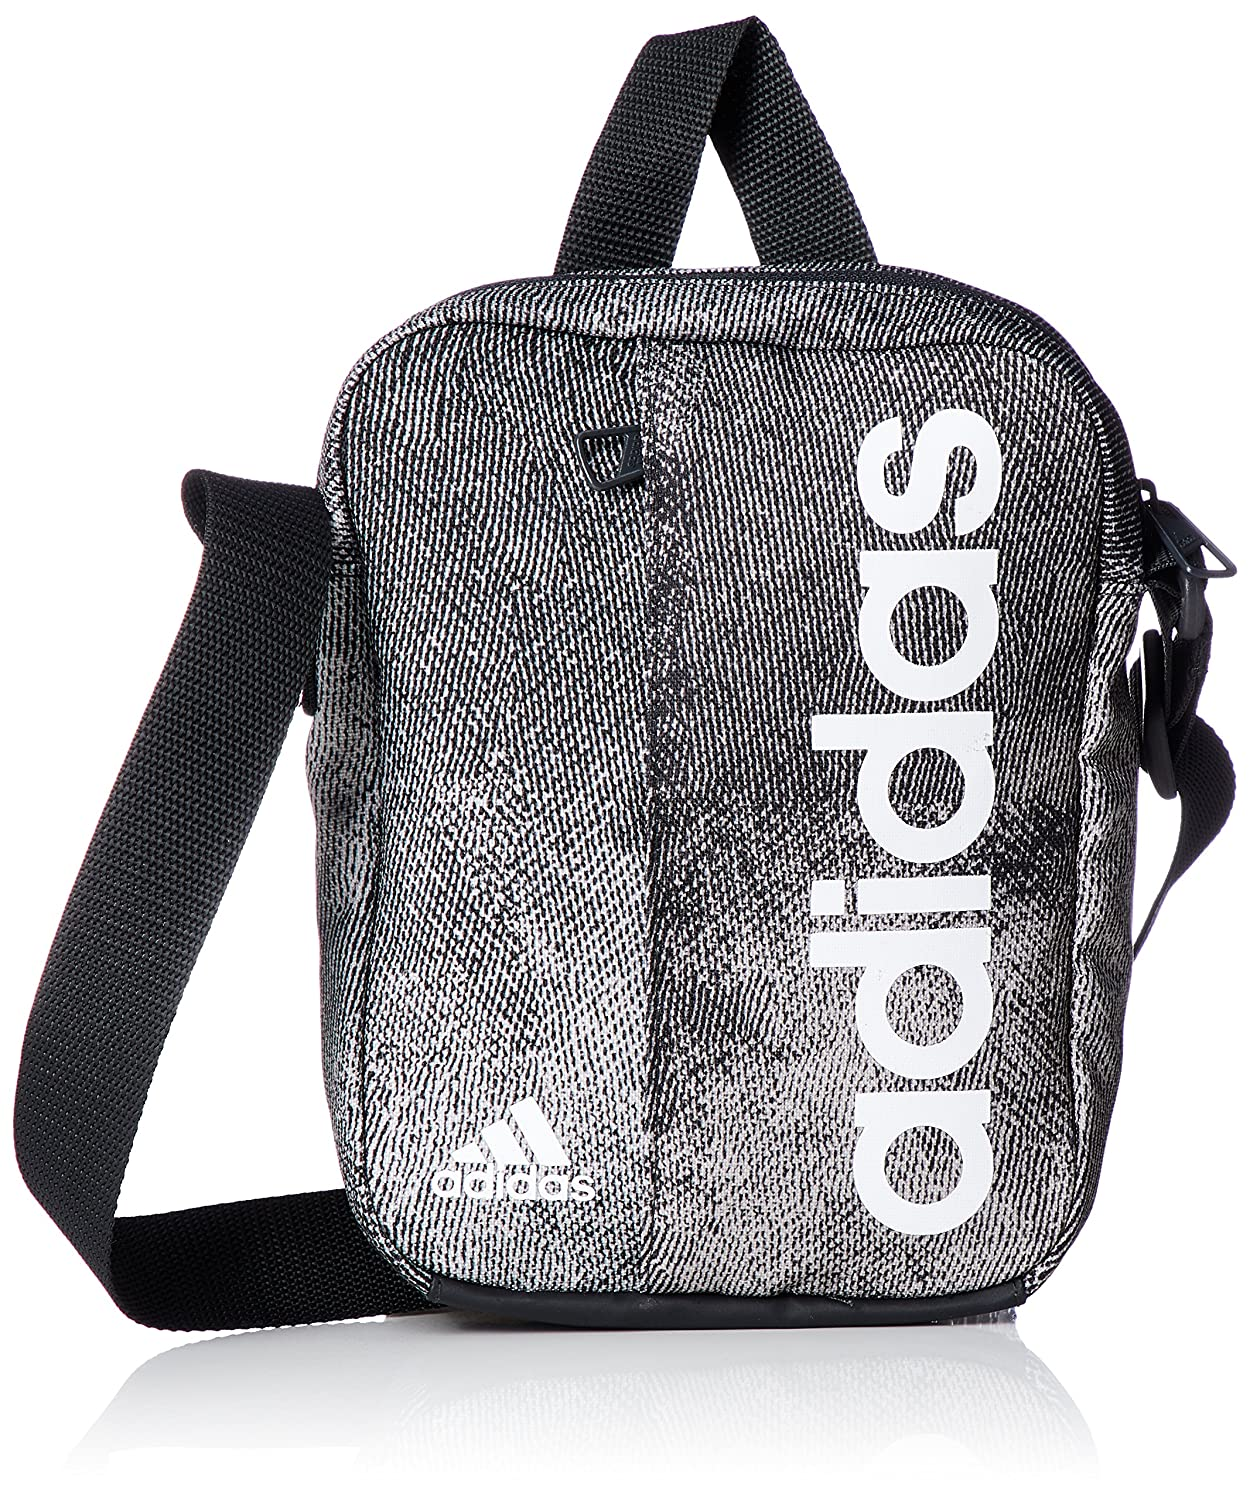 adidas Linear Performance Organizer Shoulder Bag  Amazon.co.uk  Sports    Outdoors 9649638db1762